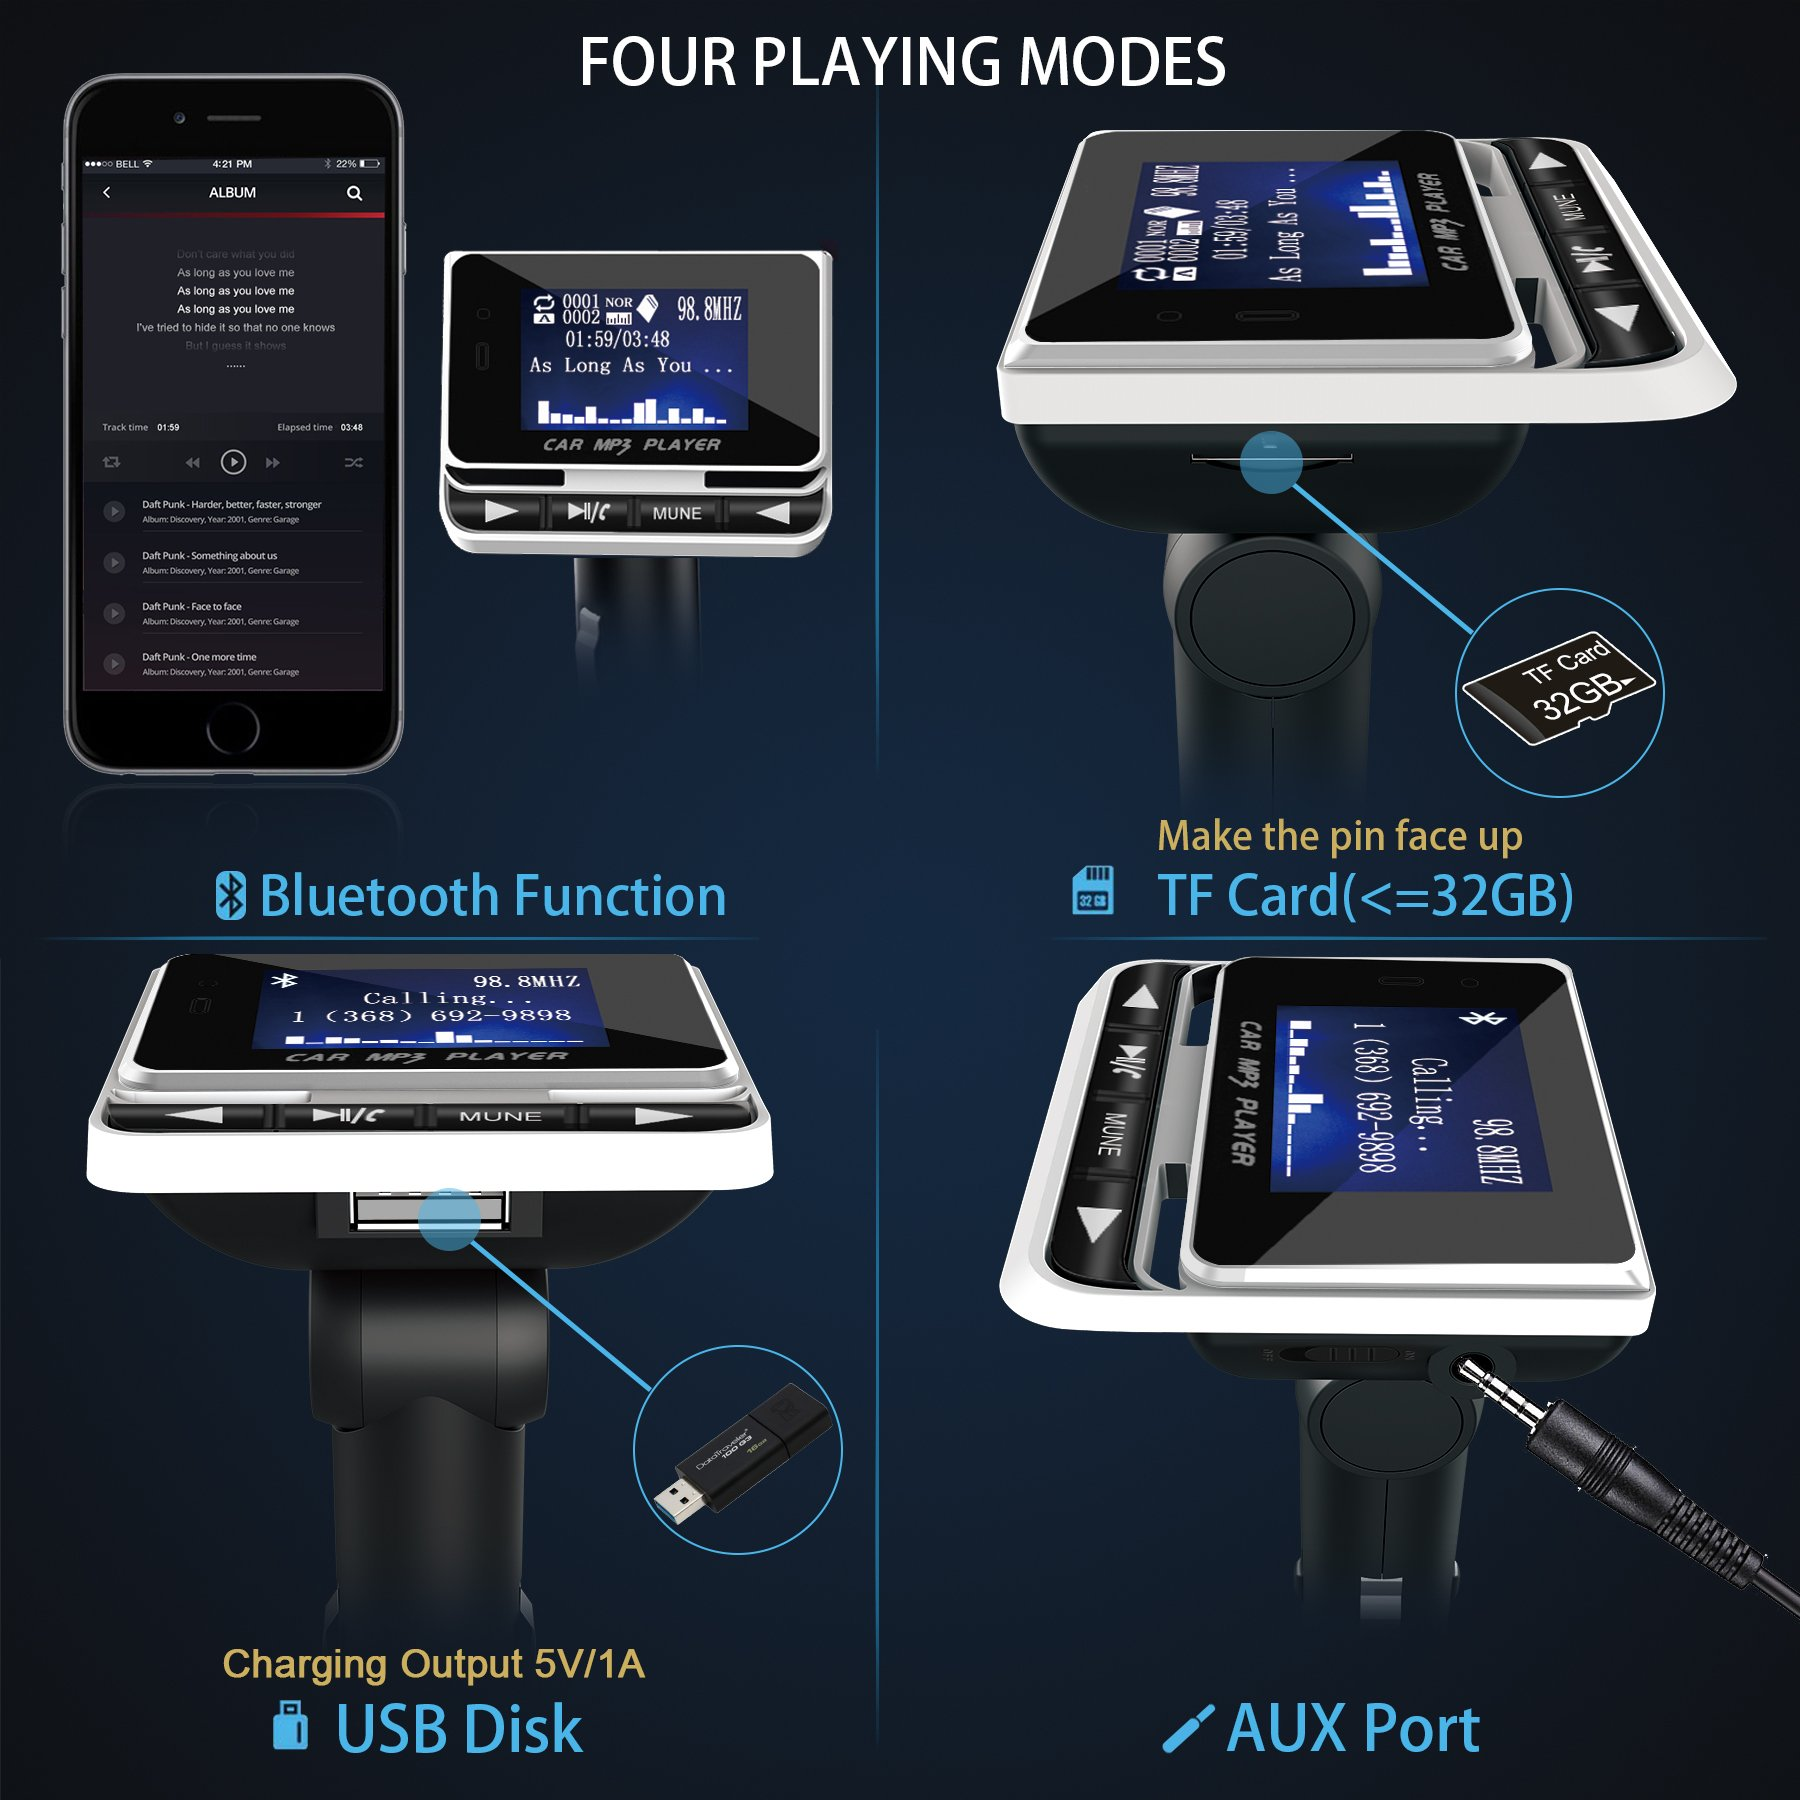 FM Transmitter, Tohayie Bluetooth Wireless Radio Adapter Audio Receiver Stereo Music Tuner Modulator Car Kit with USB Charger, Remote Control by ToHayie (Image #6)